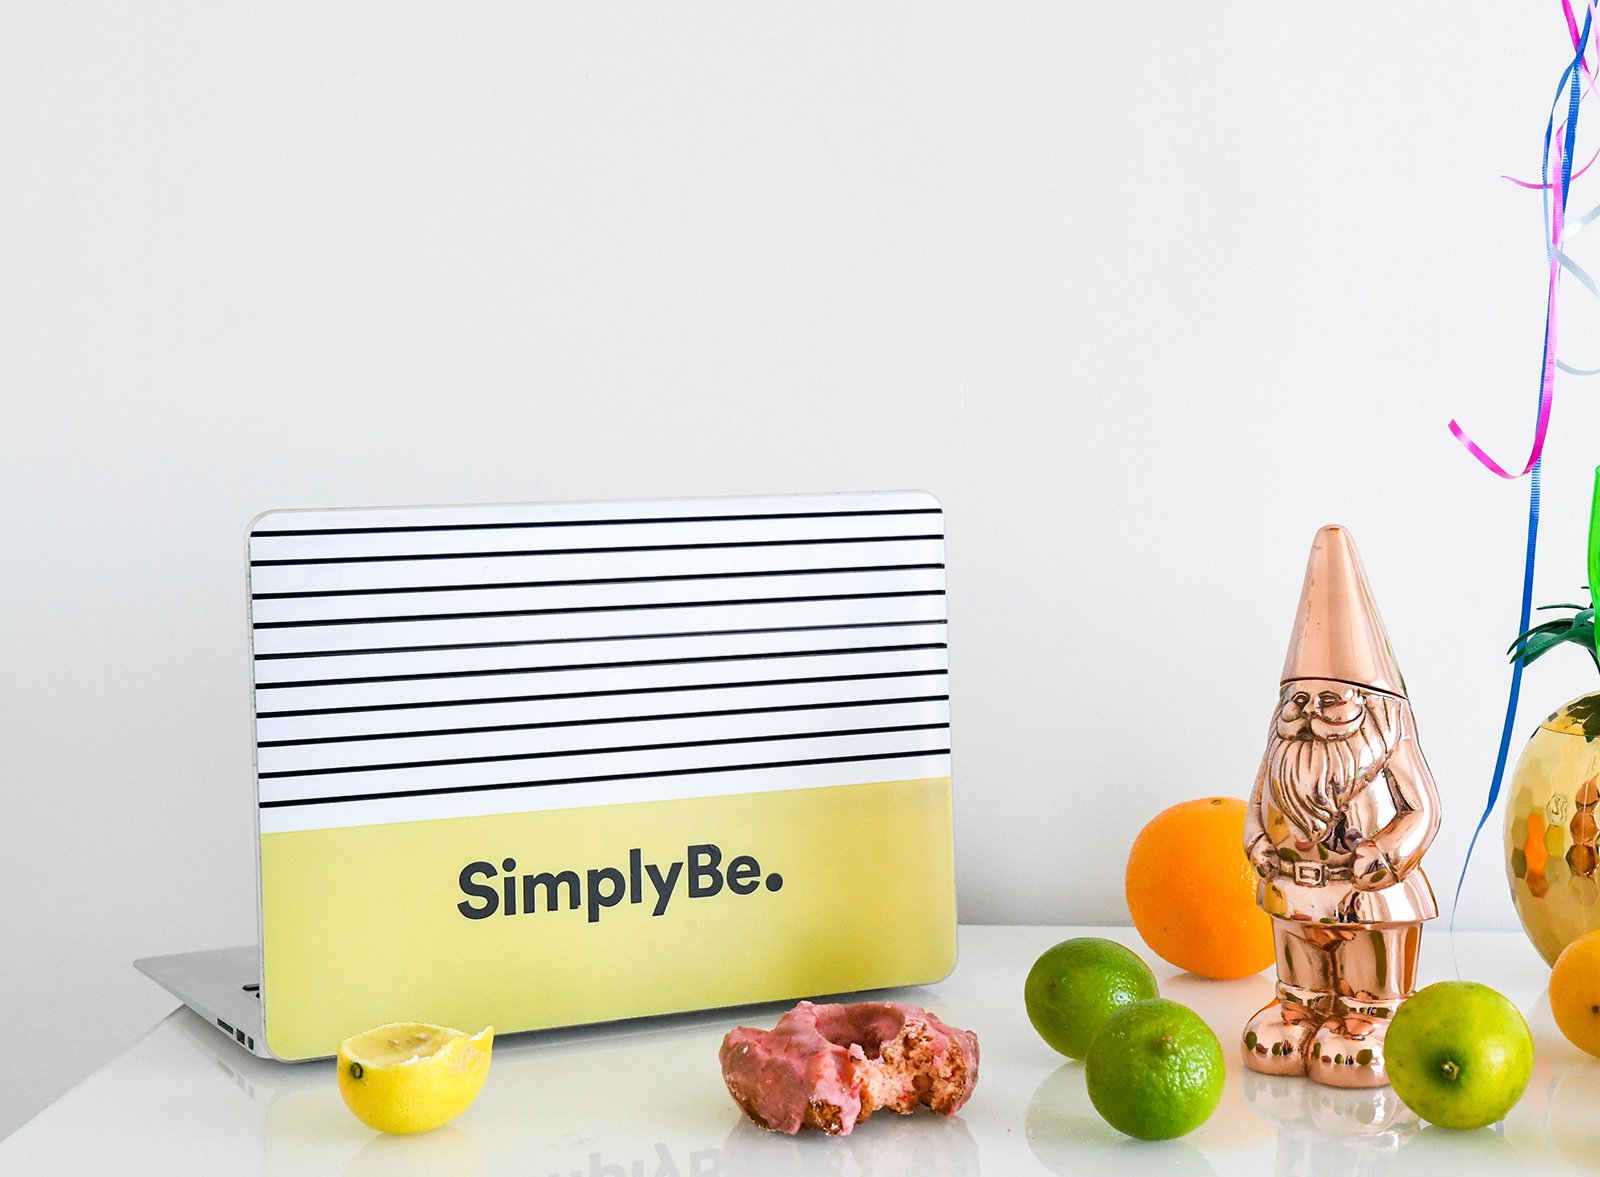 SimplyBe. Agency's Guide to Instagram